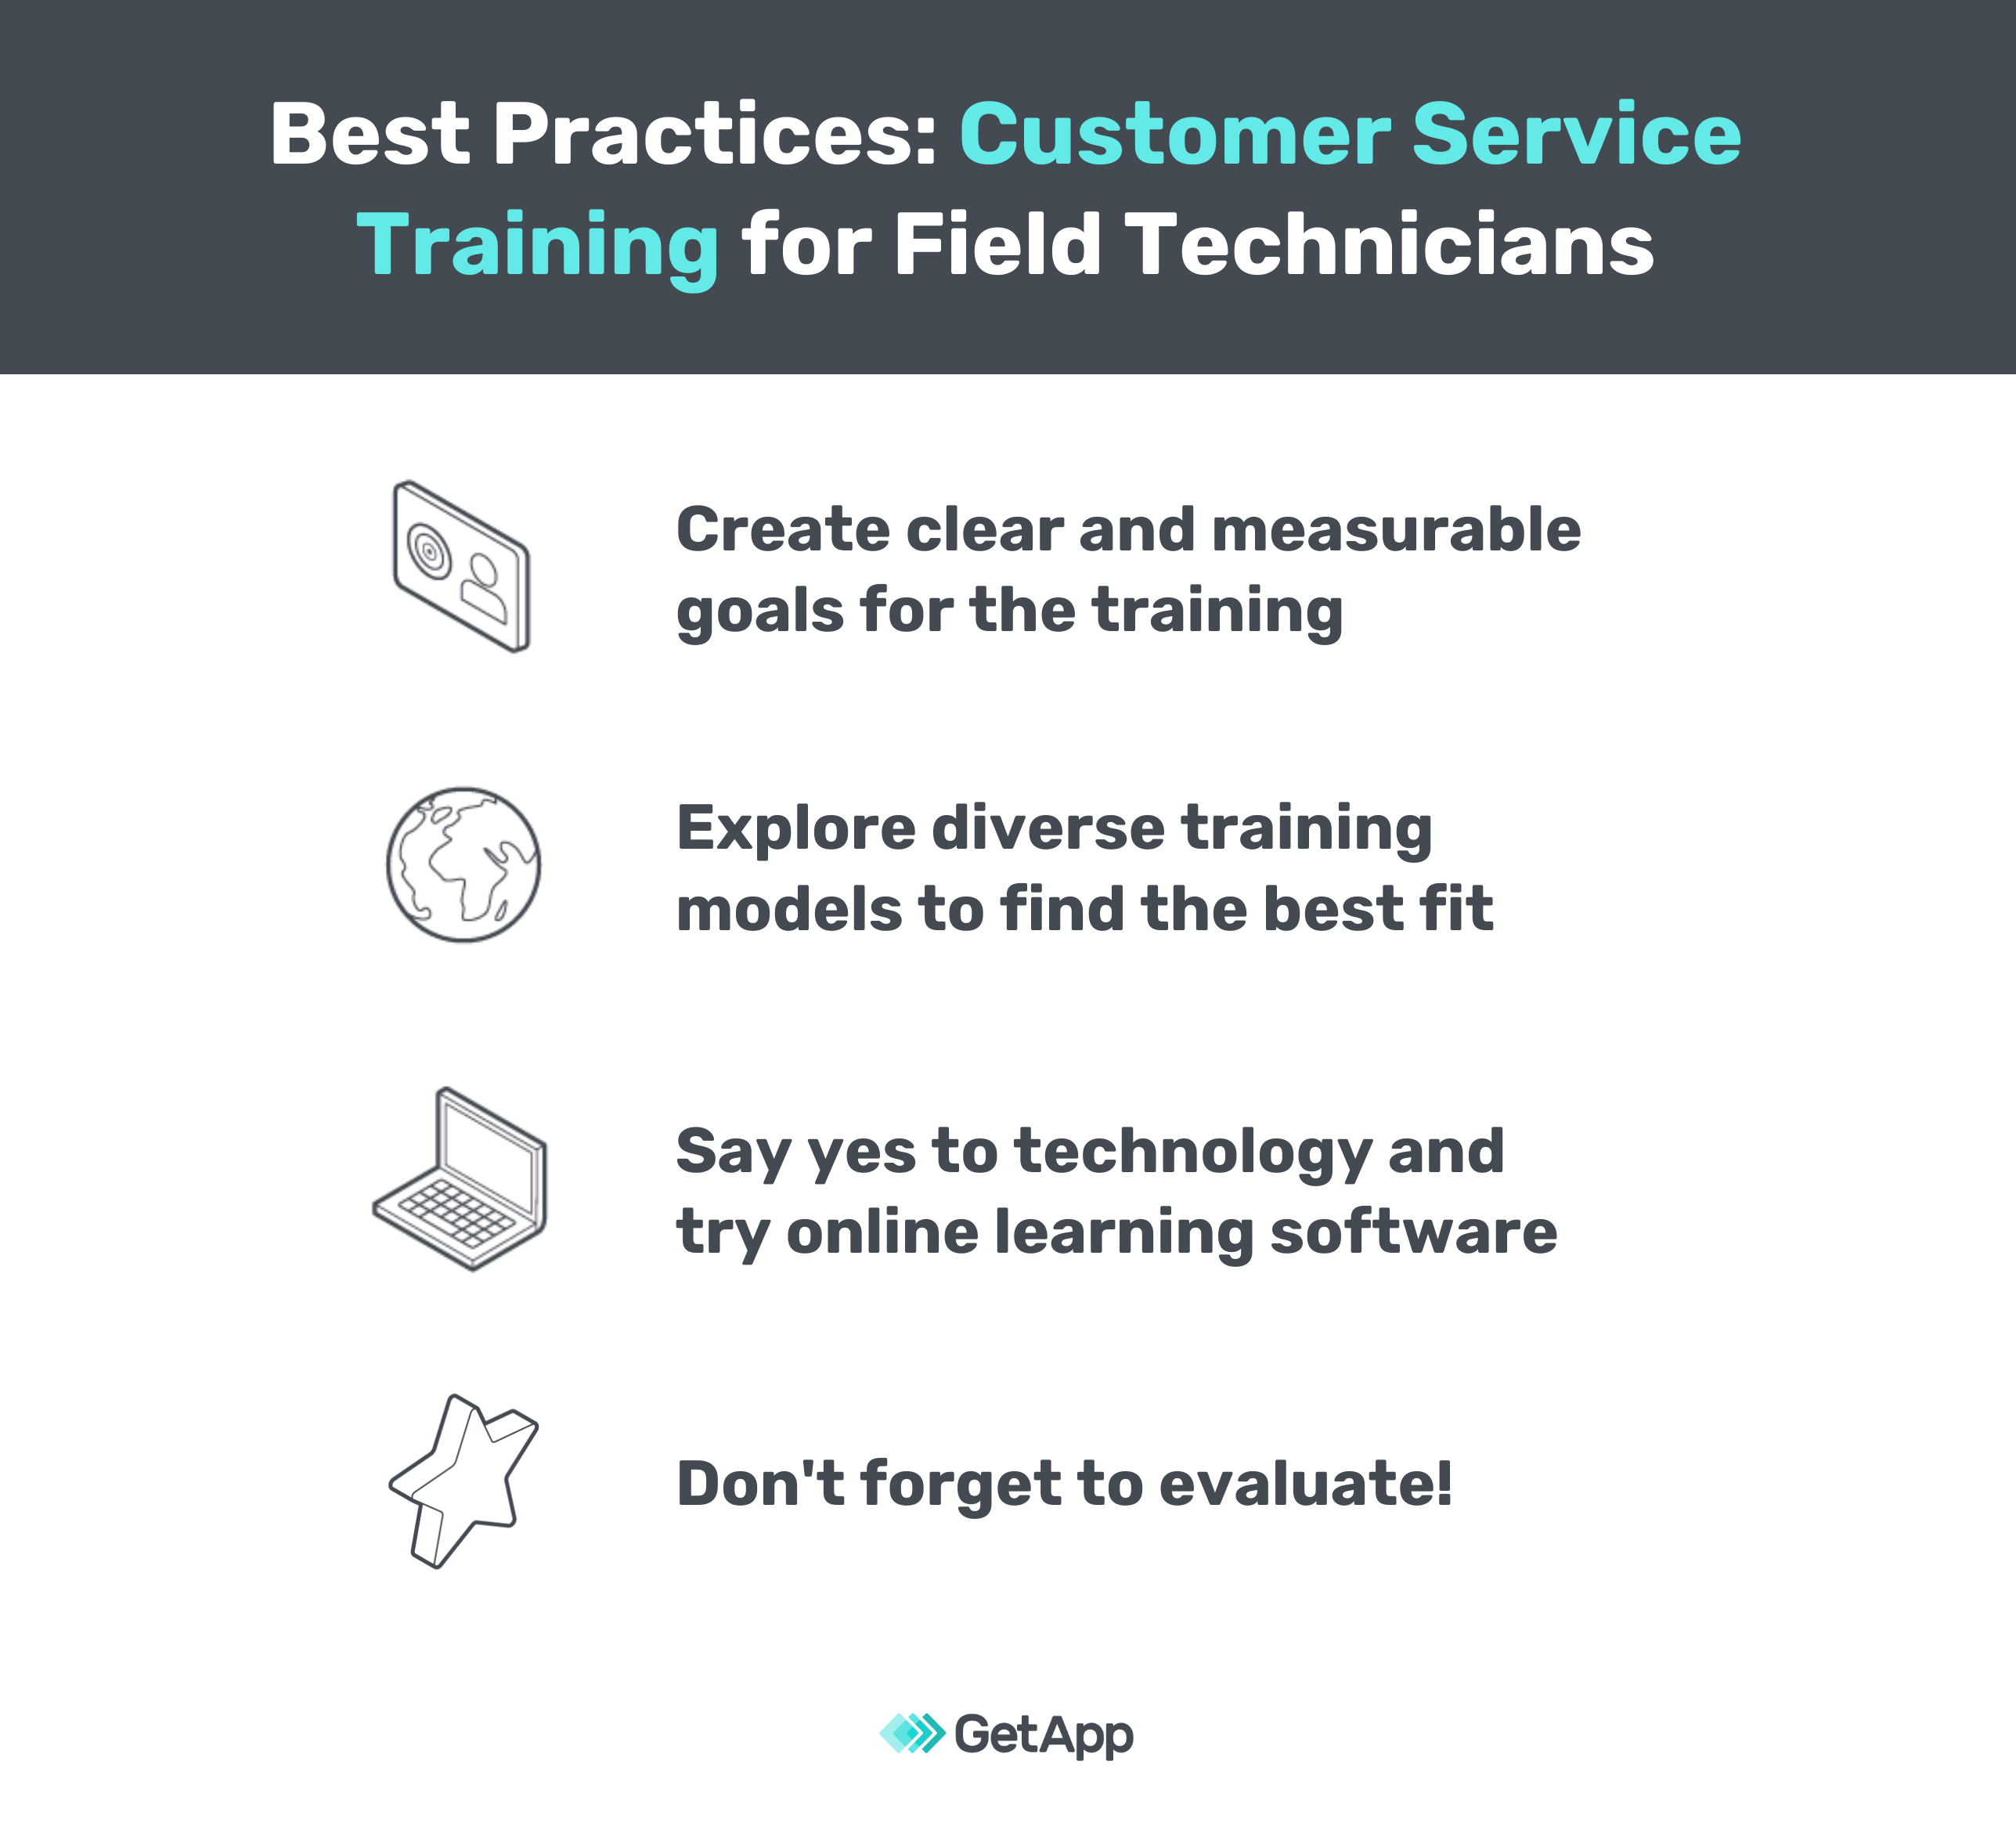 Best practices: customer service training for field technicians